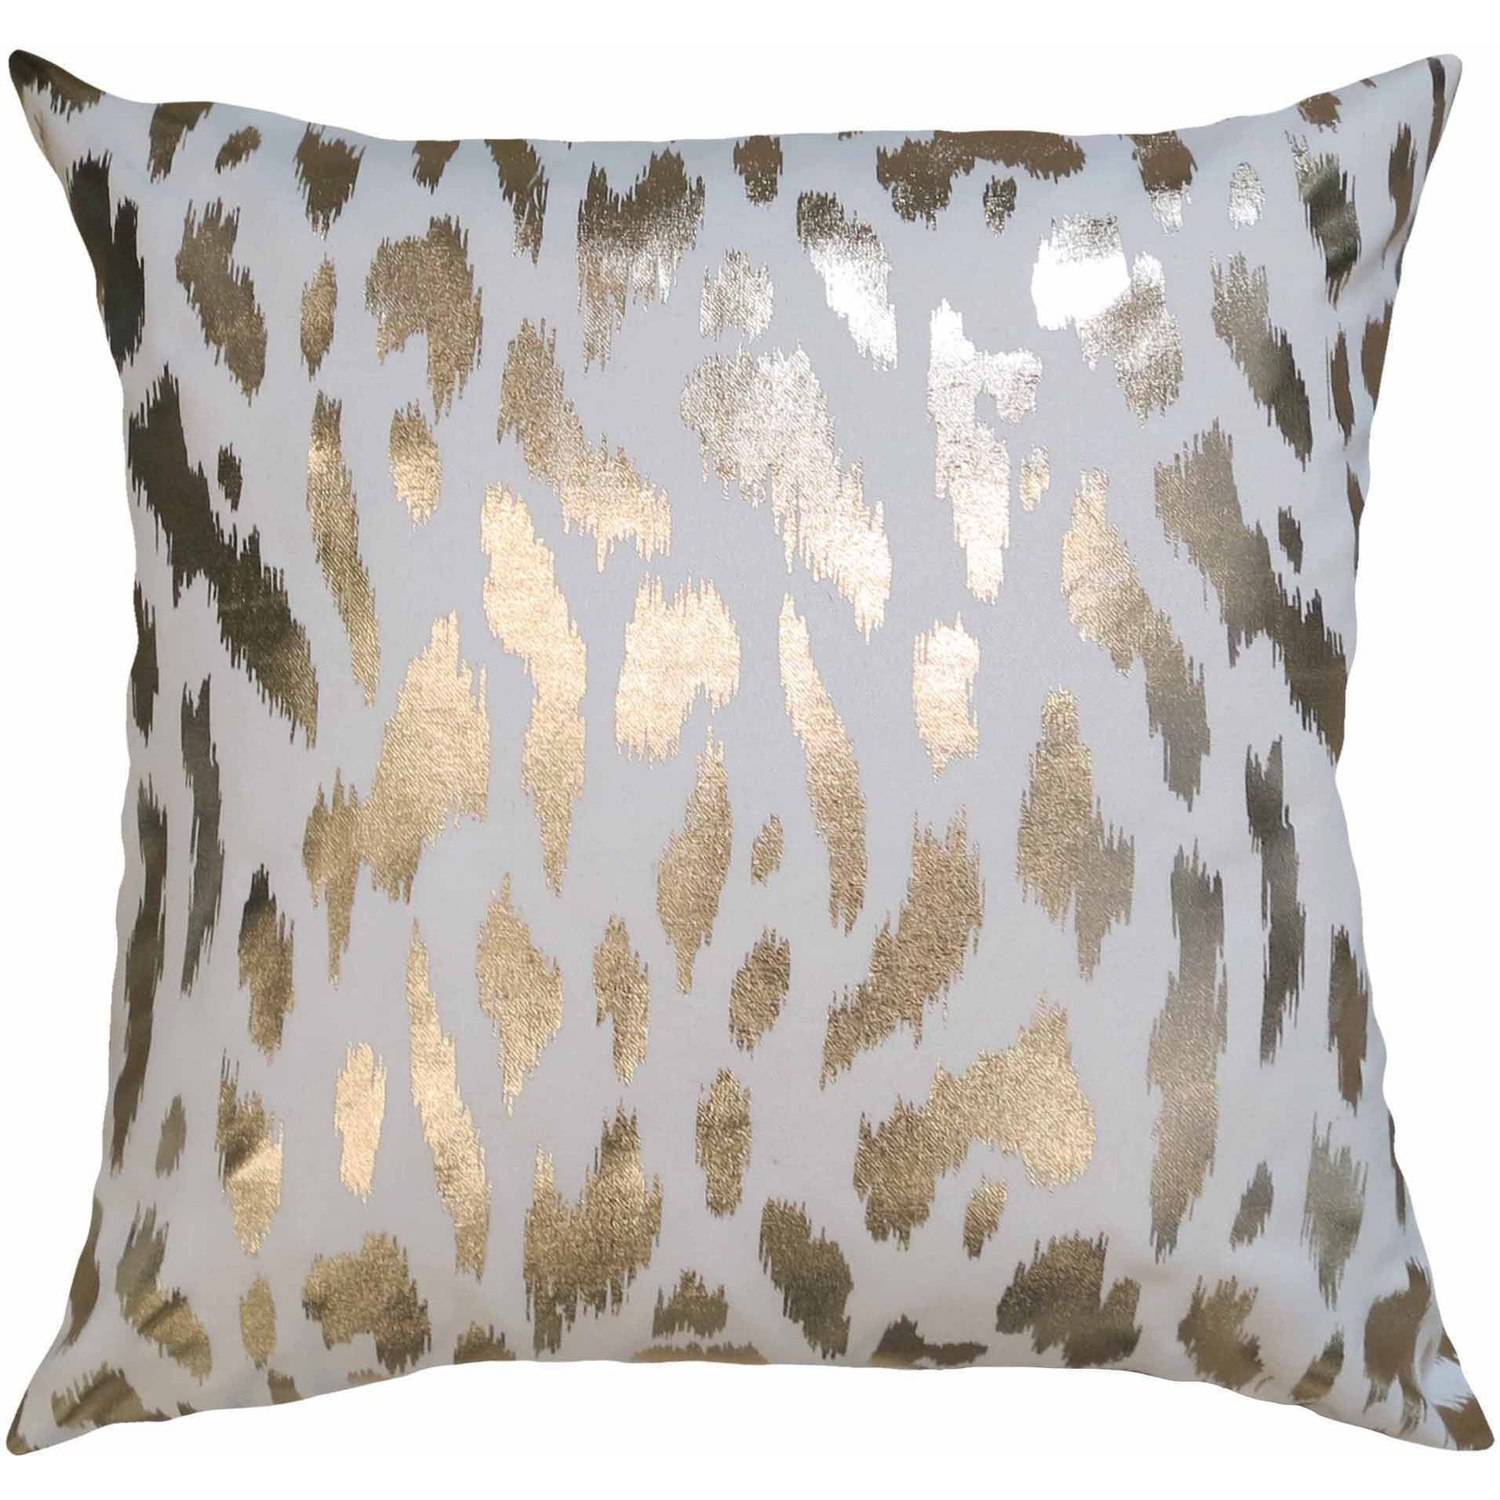 Better Homes and Gardens Golden Cheetah, Luxurious Gold Foil Reversible Pillow